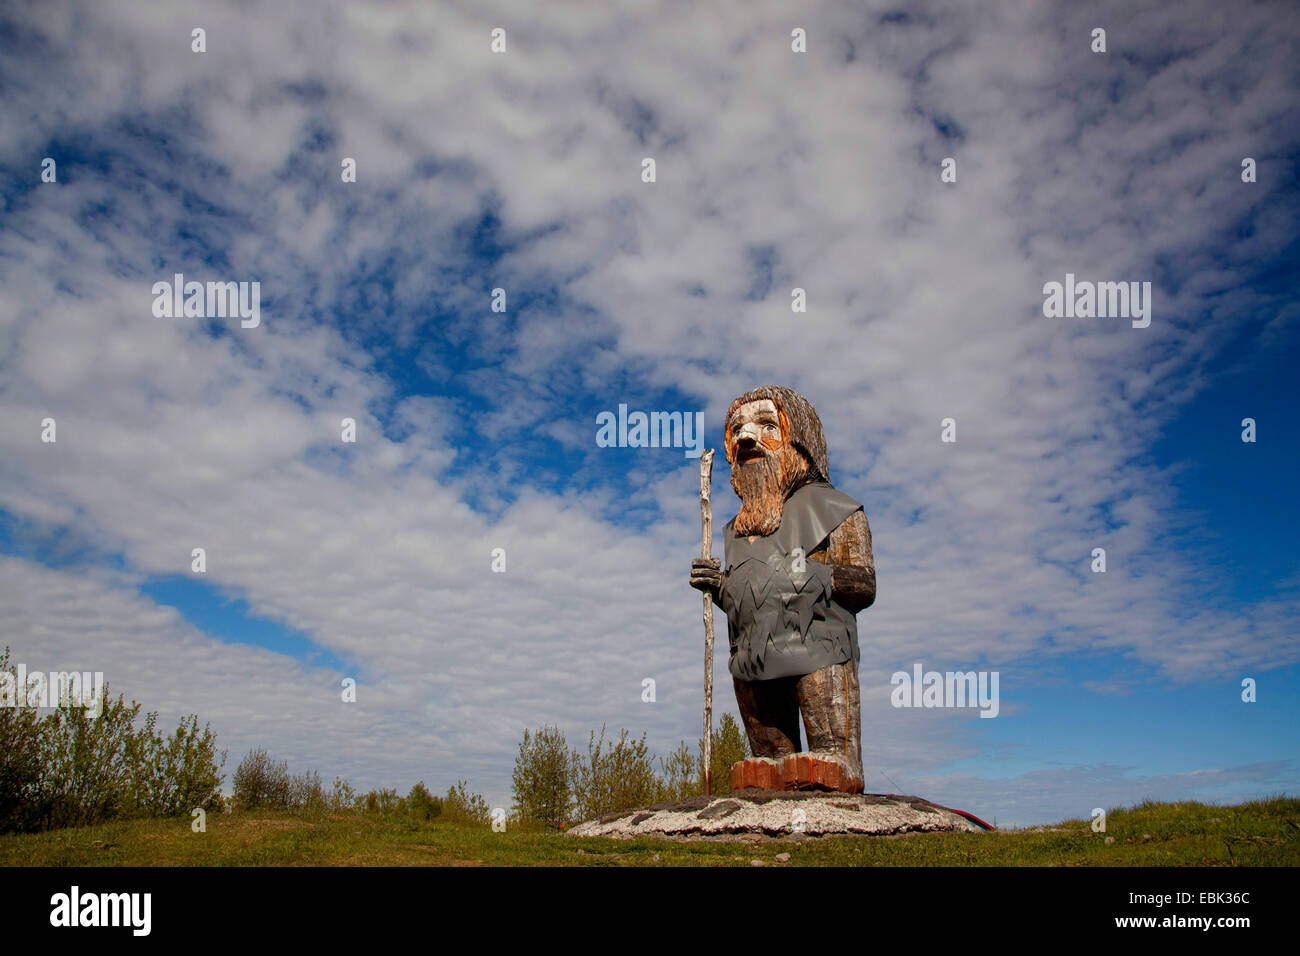 wooden sculpture of Icelandic troll, Iceland - Stock Image